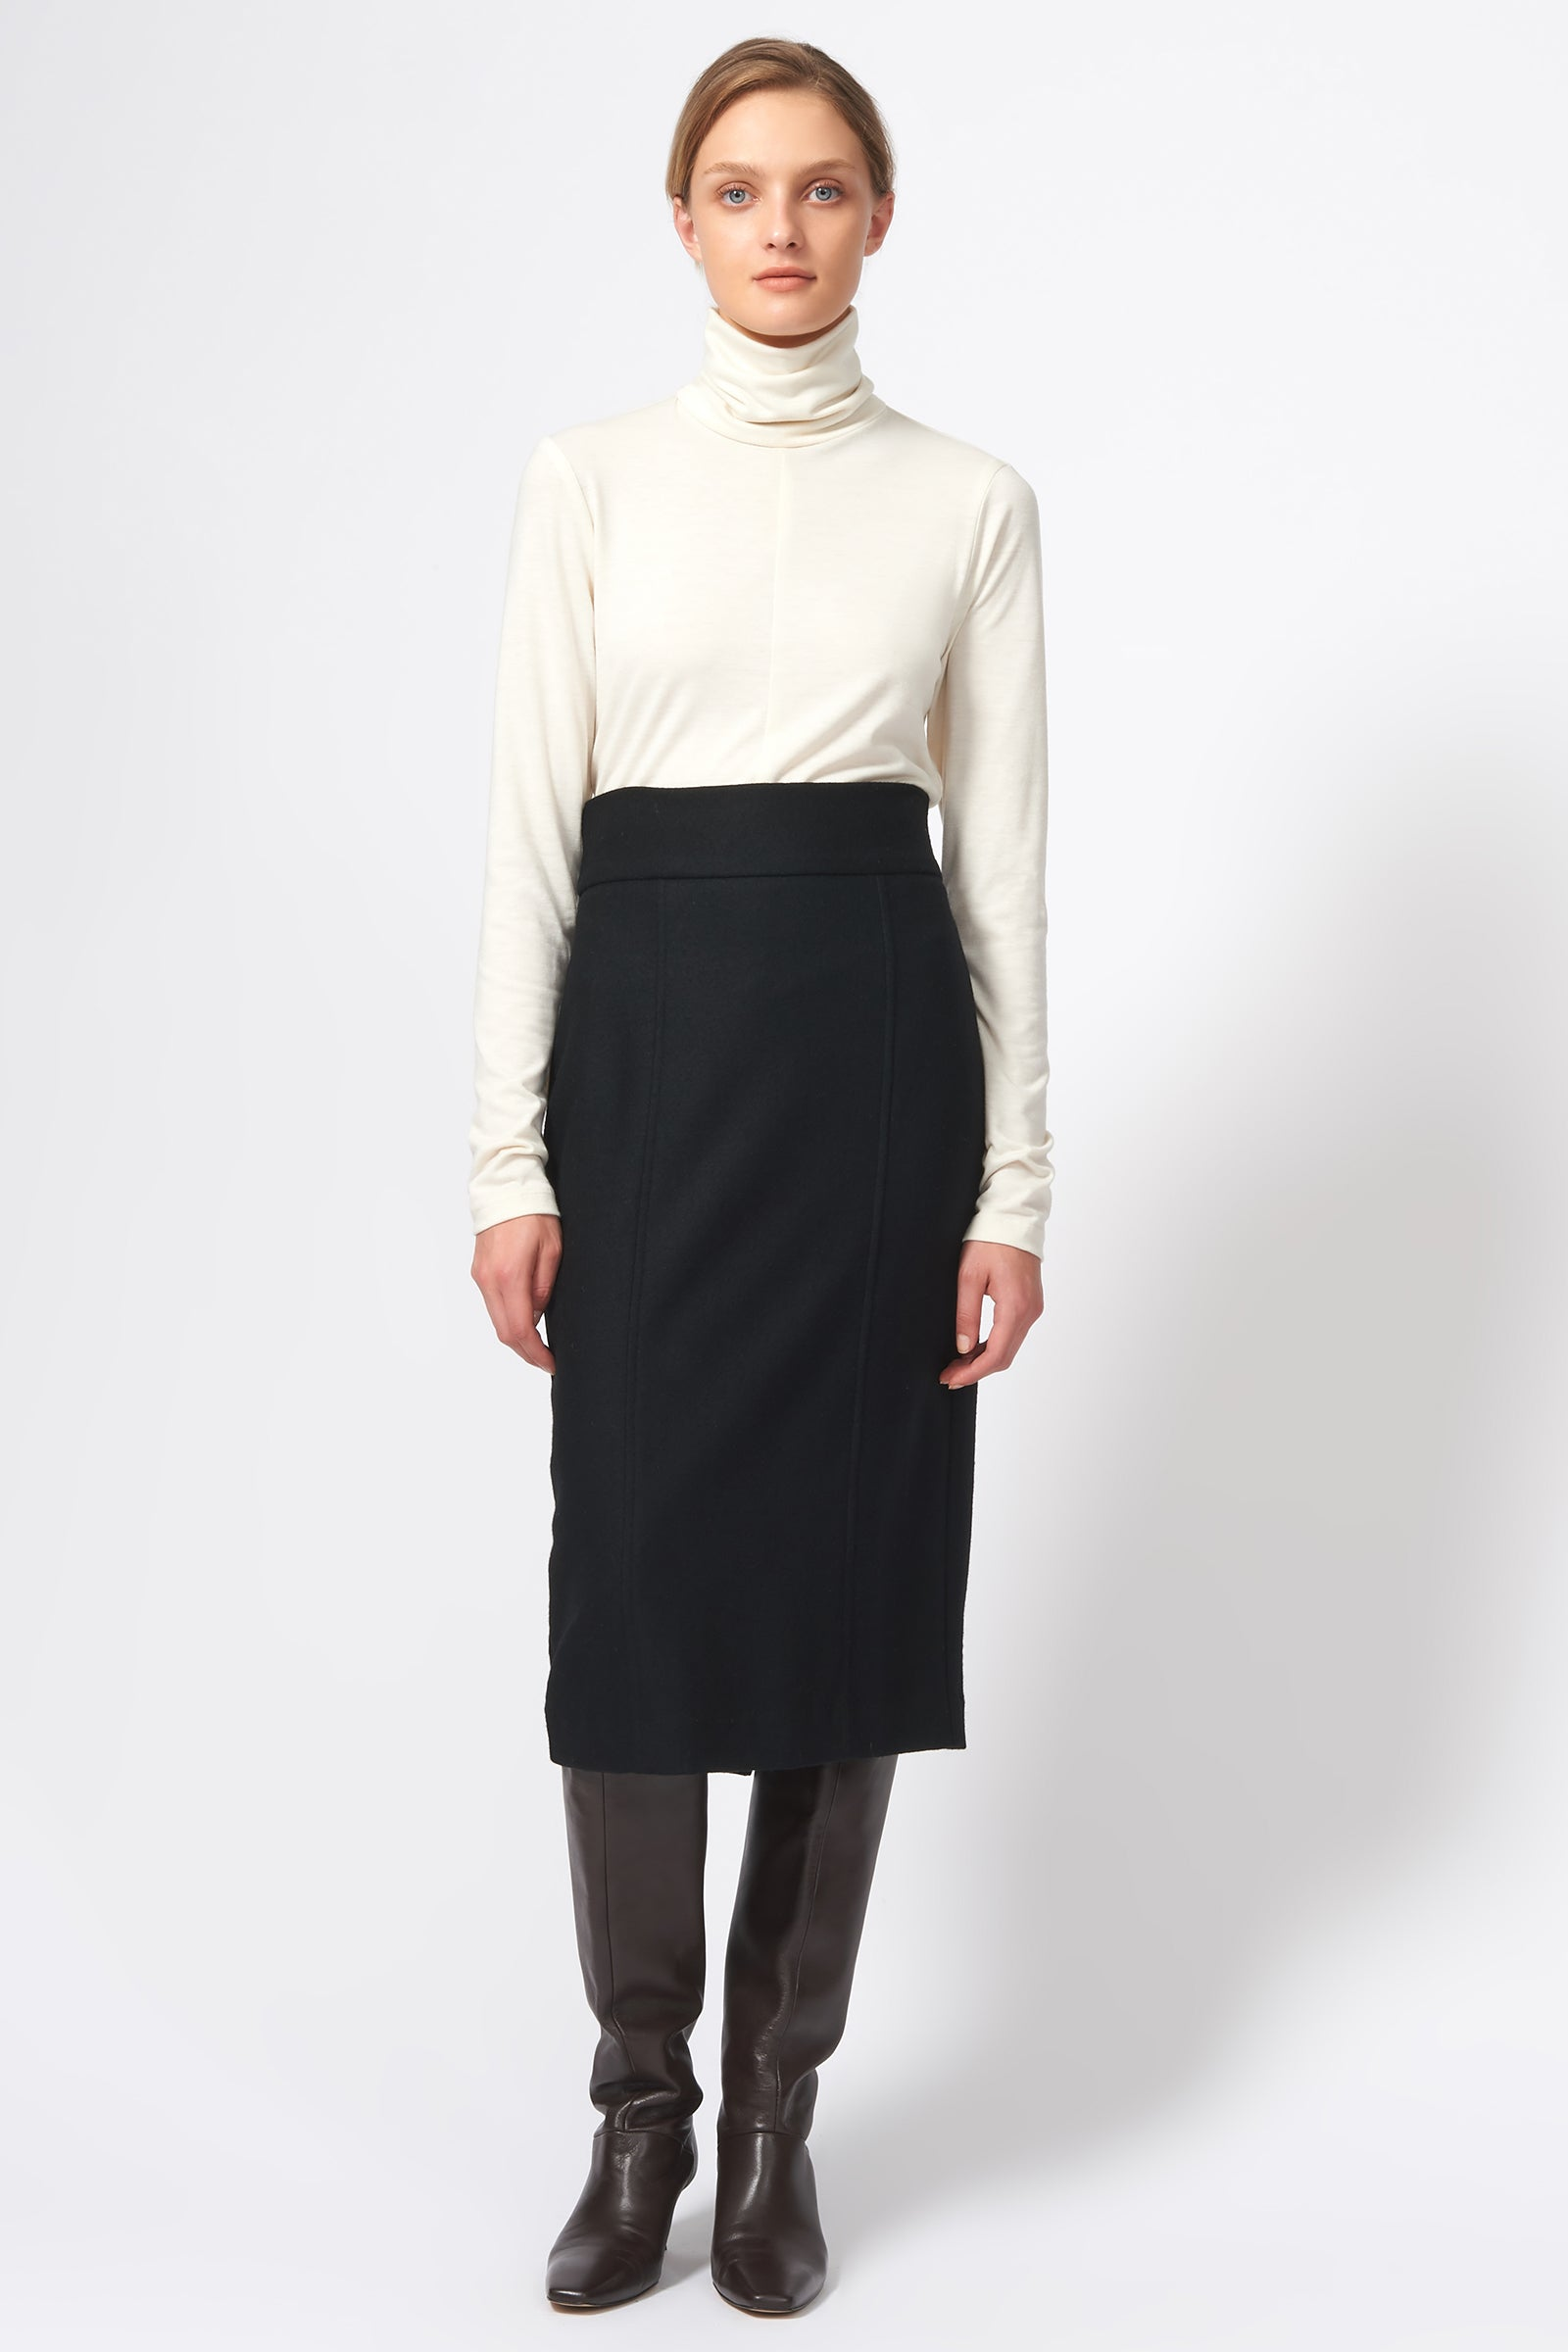 Kal Rieman High Waisted Pencil Skirt in Black on Model Full Front View